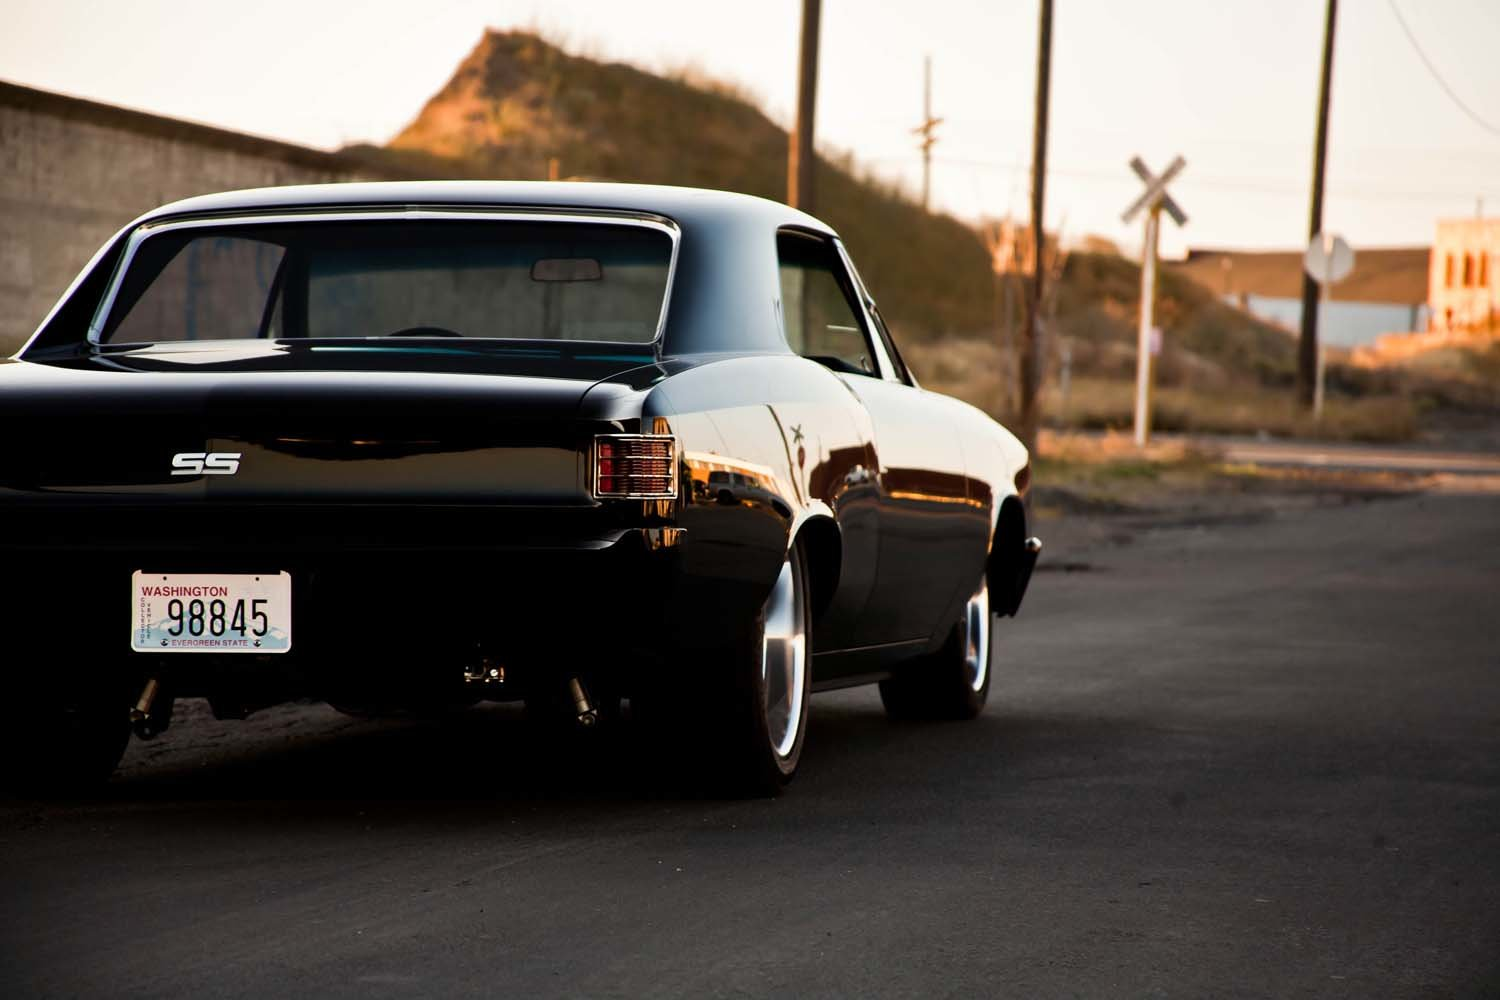 1967 Muscle Car - Chevelle